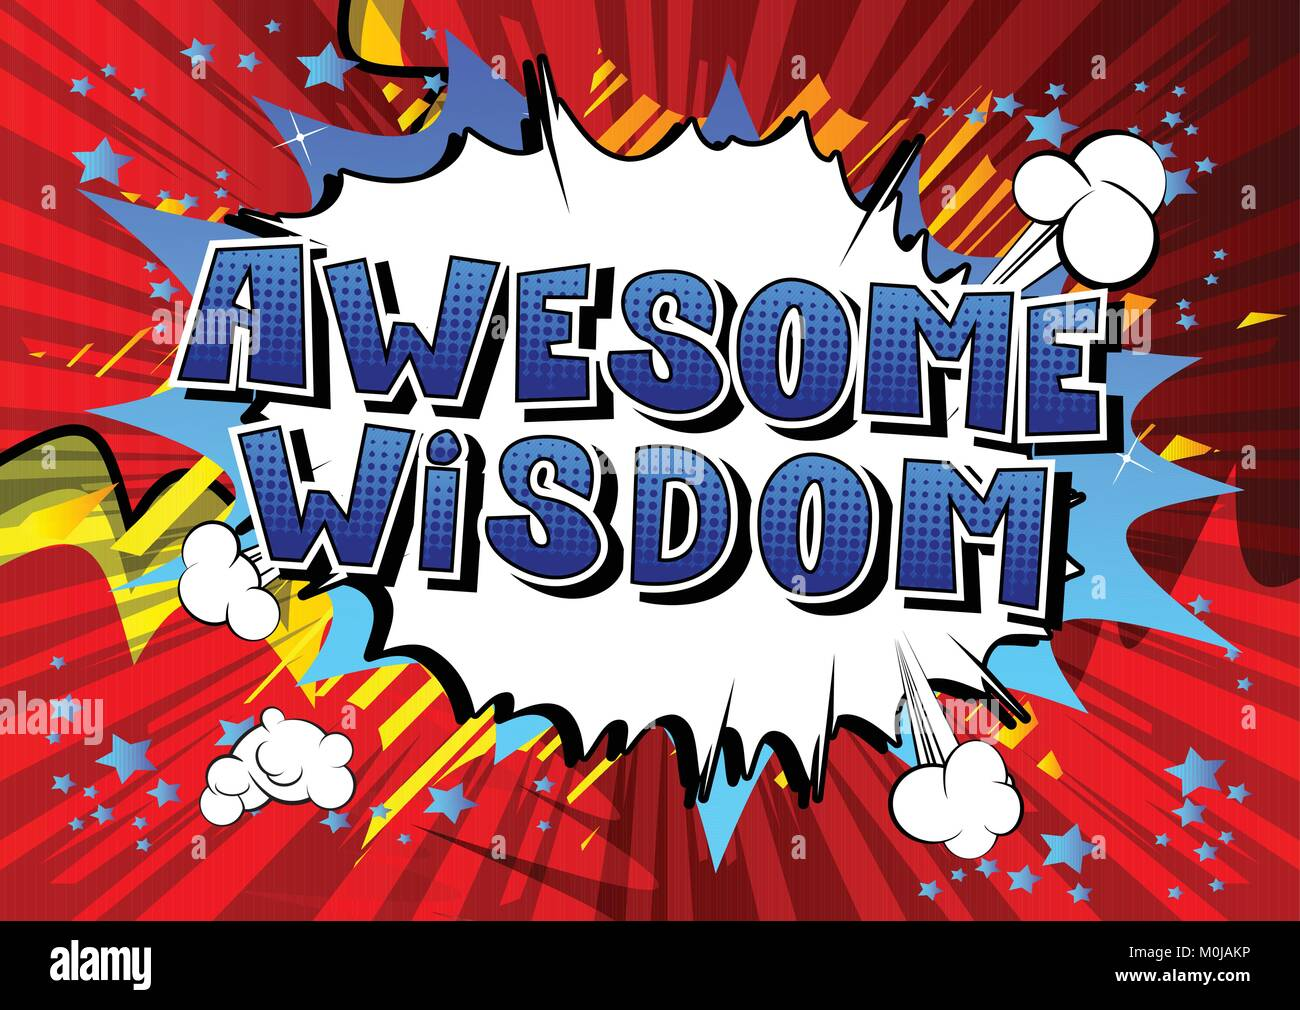 Awesome Wisdom - Comic book style word on abstract background. - Stock Vector